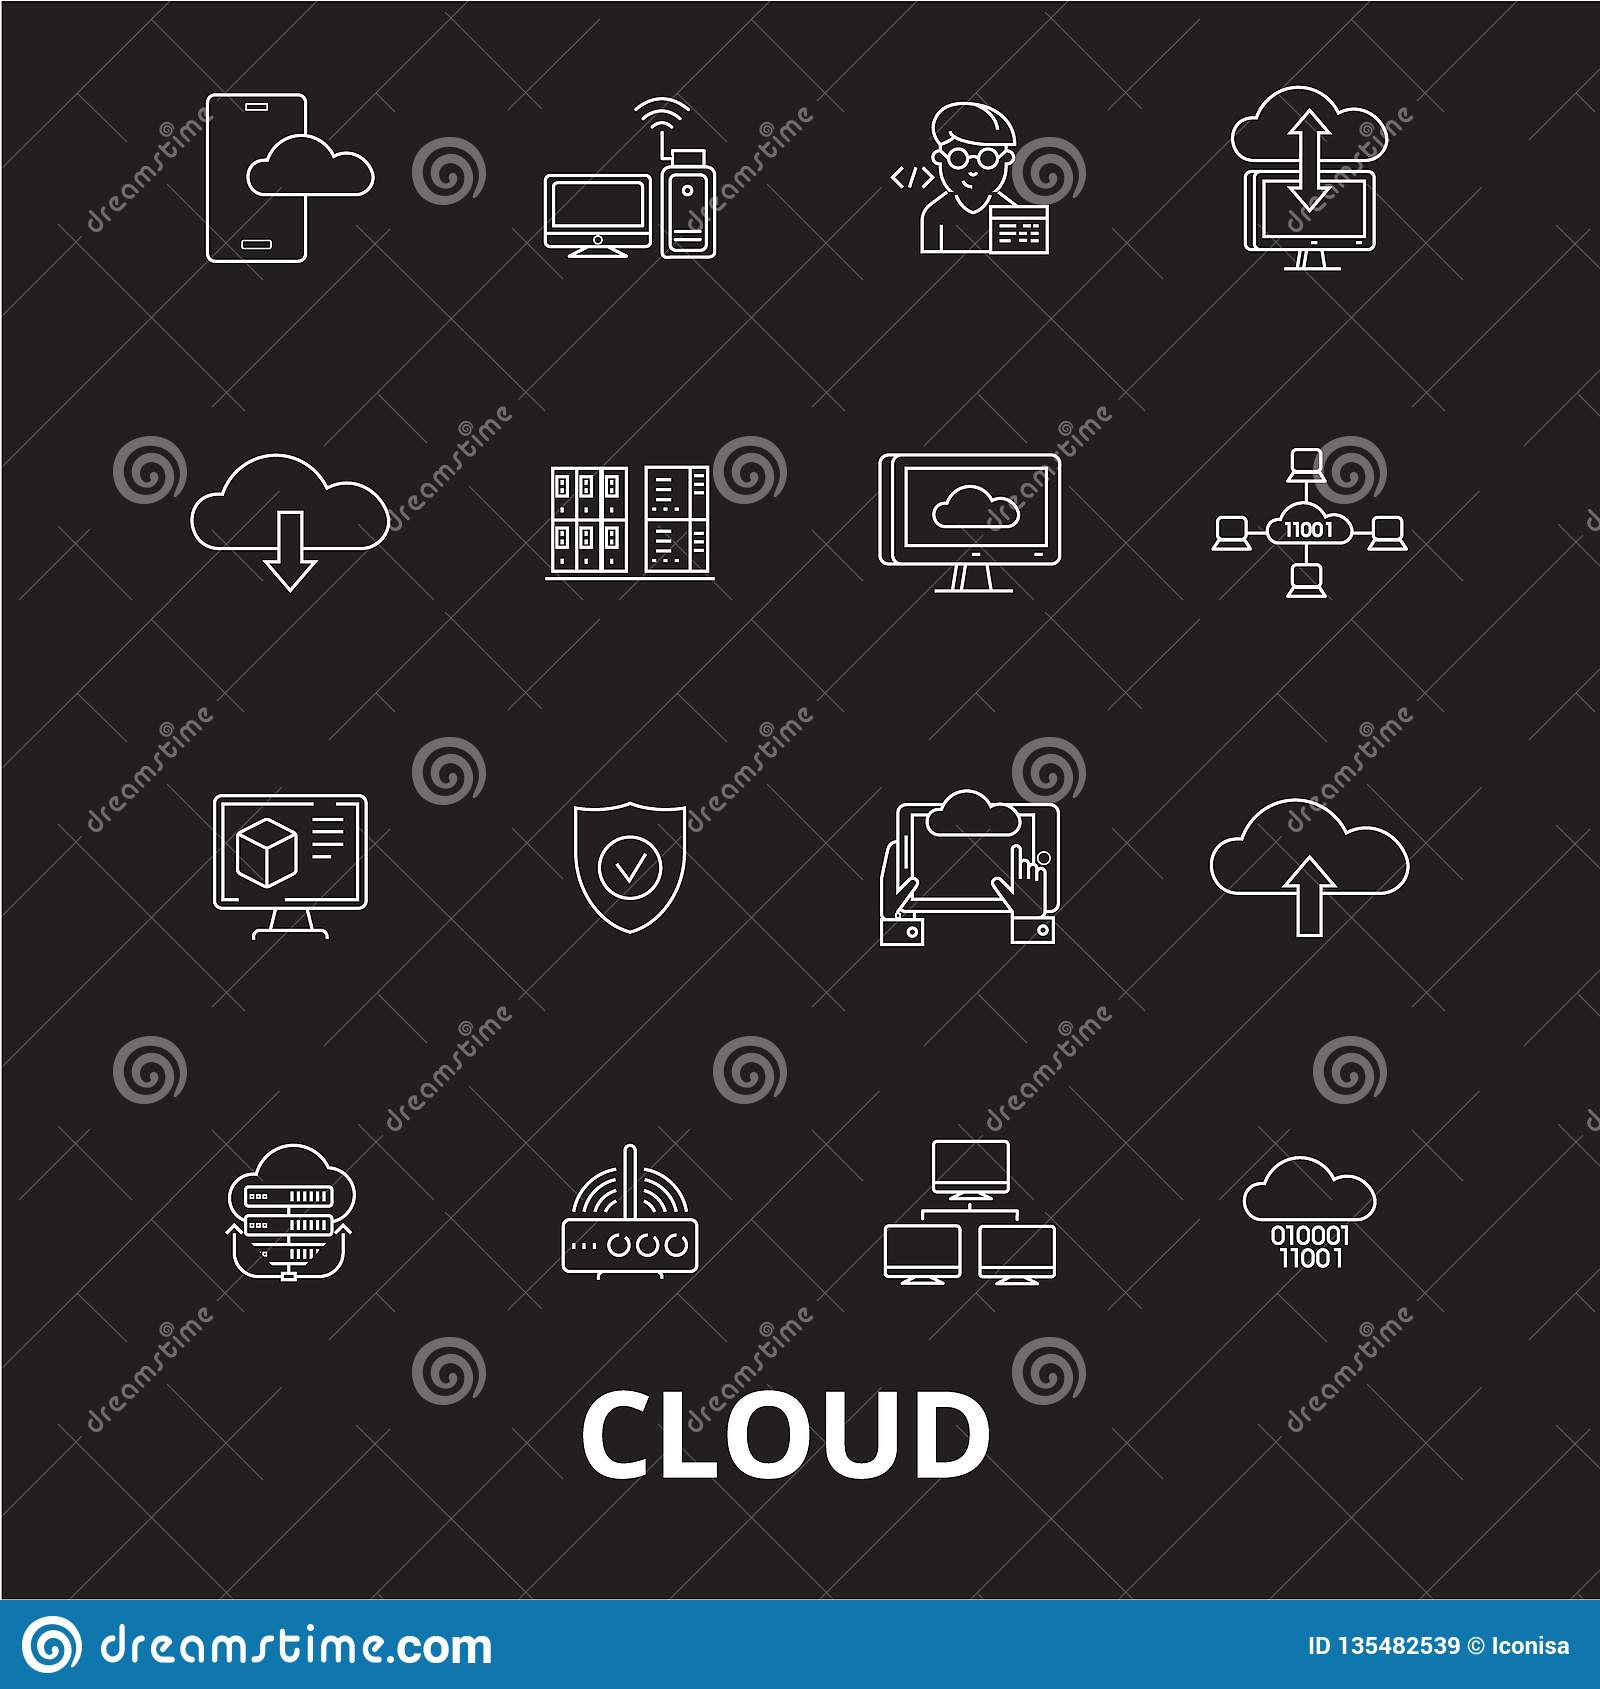 Cloud editable line icons vector set on black background. Cloud white outline illustrations, signs, symbols